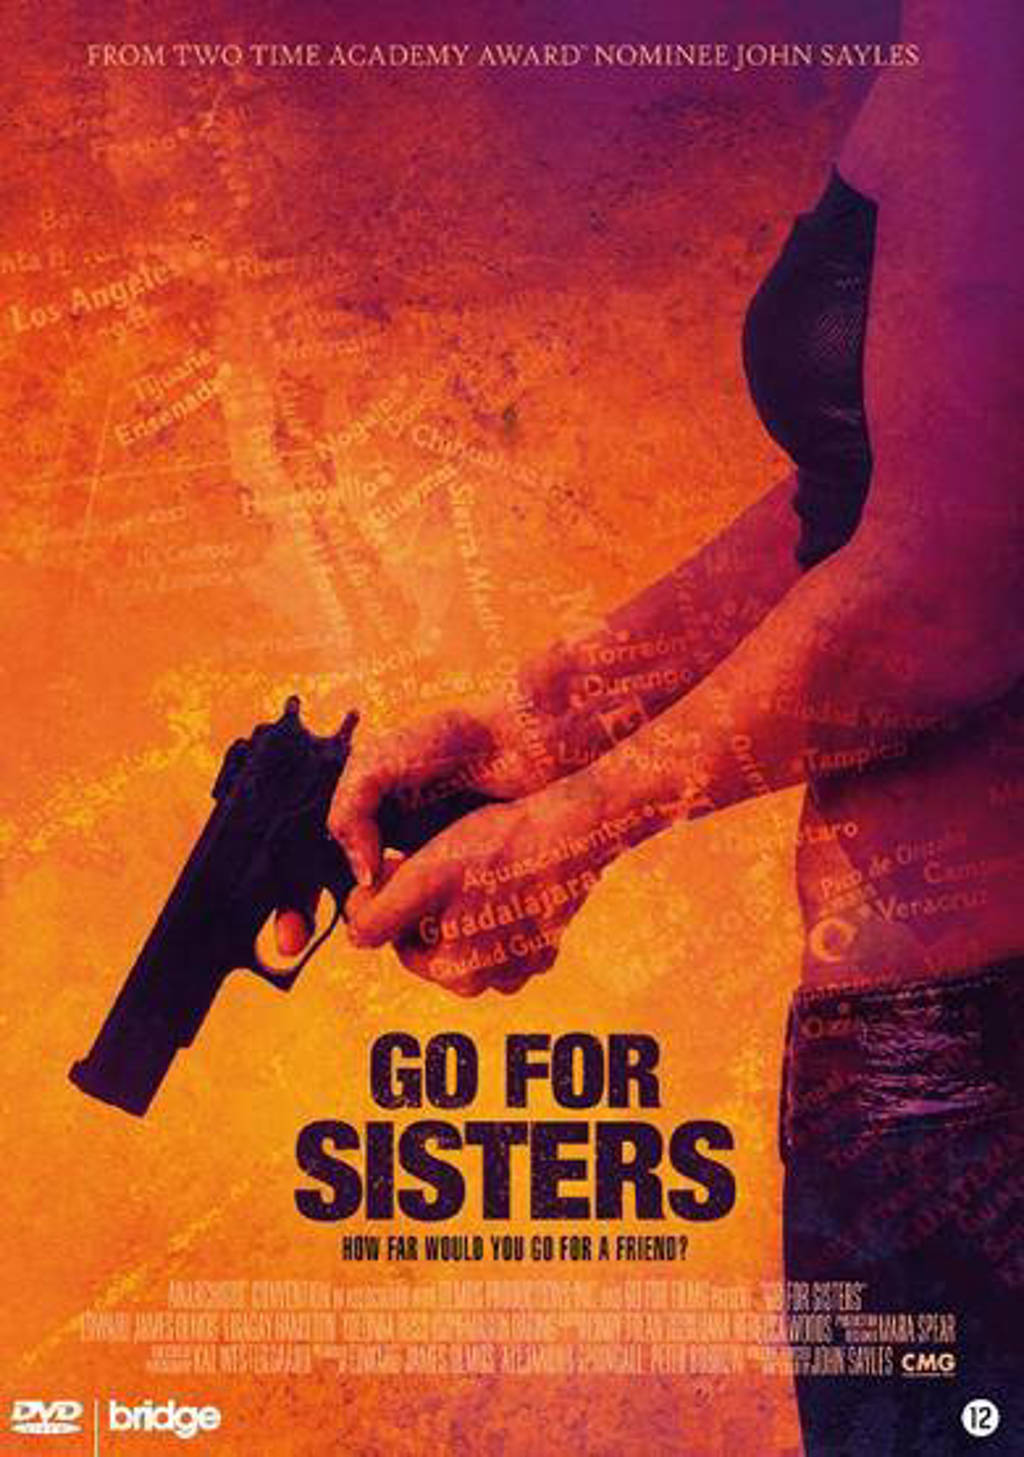 Go for sisters (DVD)